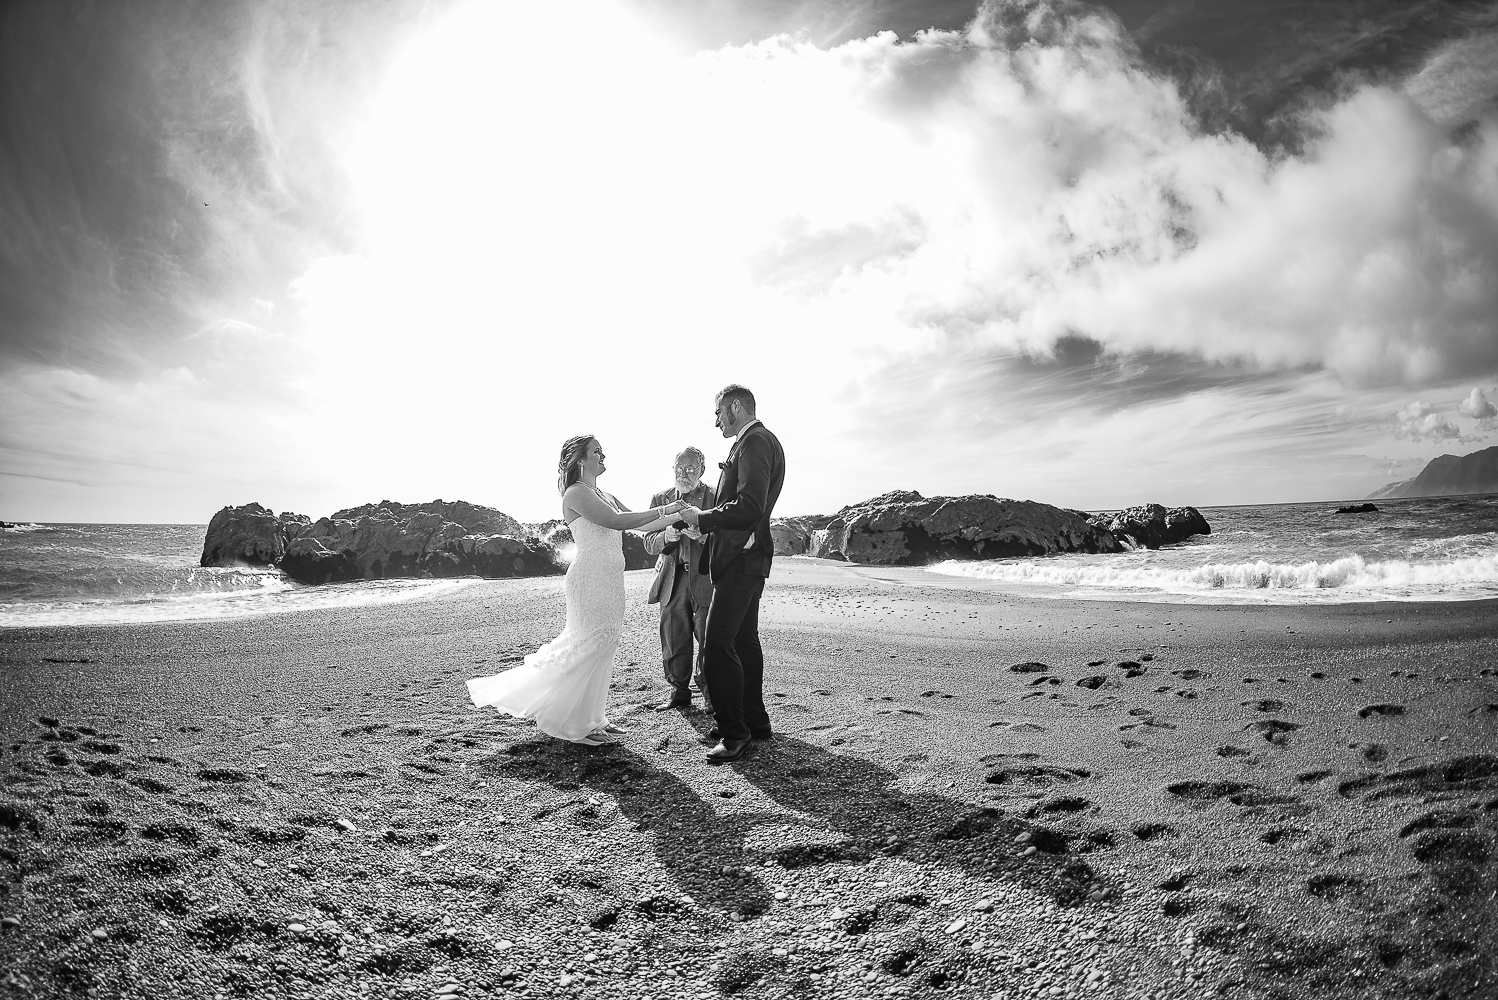 Shelter Cove-Intimate Destination beach Wedding-Parky's Pics Photography-Humboldt County_-9.jpg